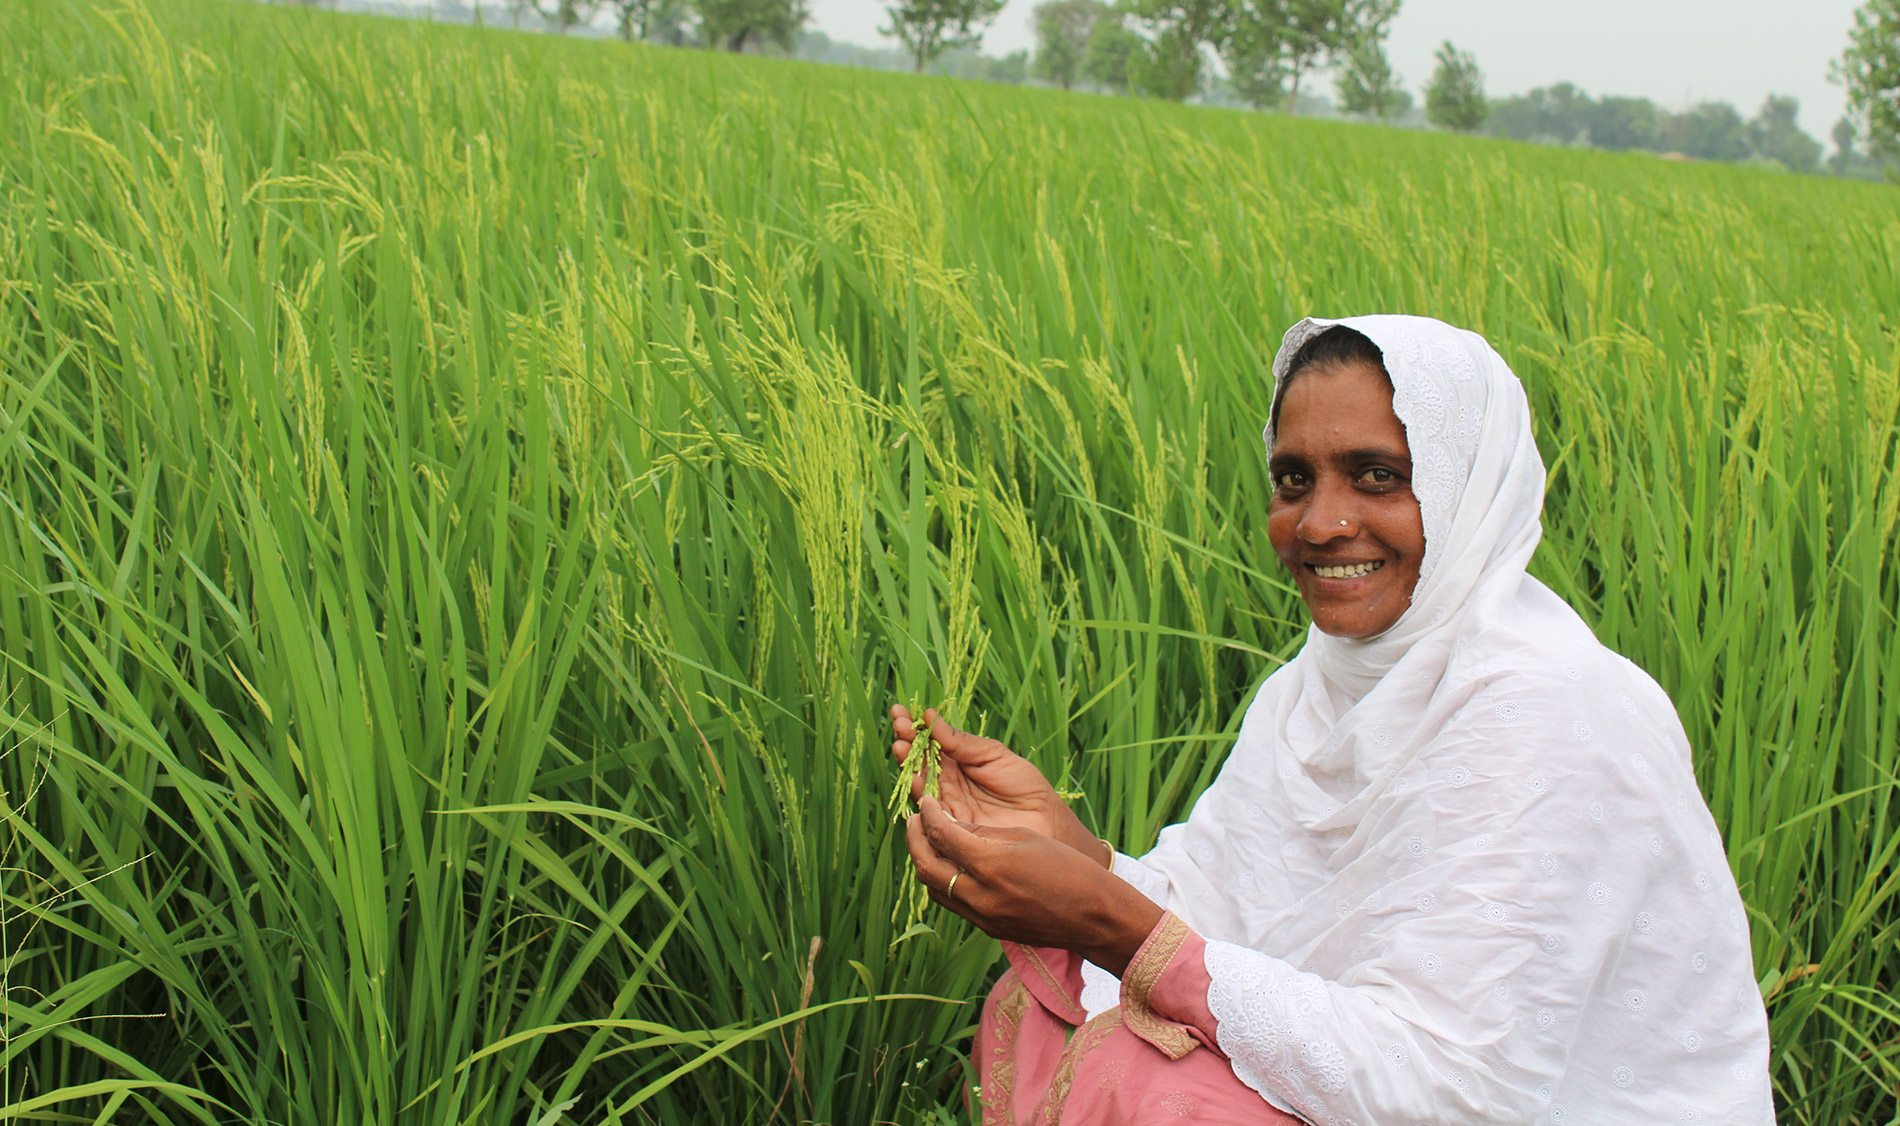 Pakistan partnerships in inclusive seed systems